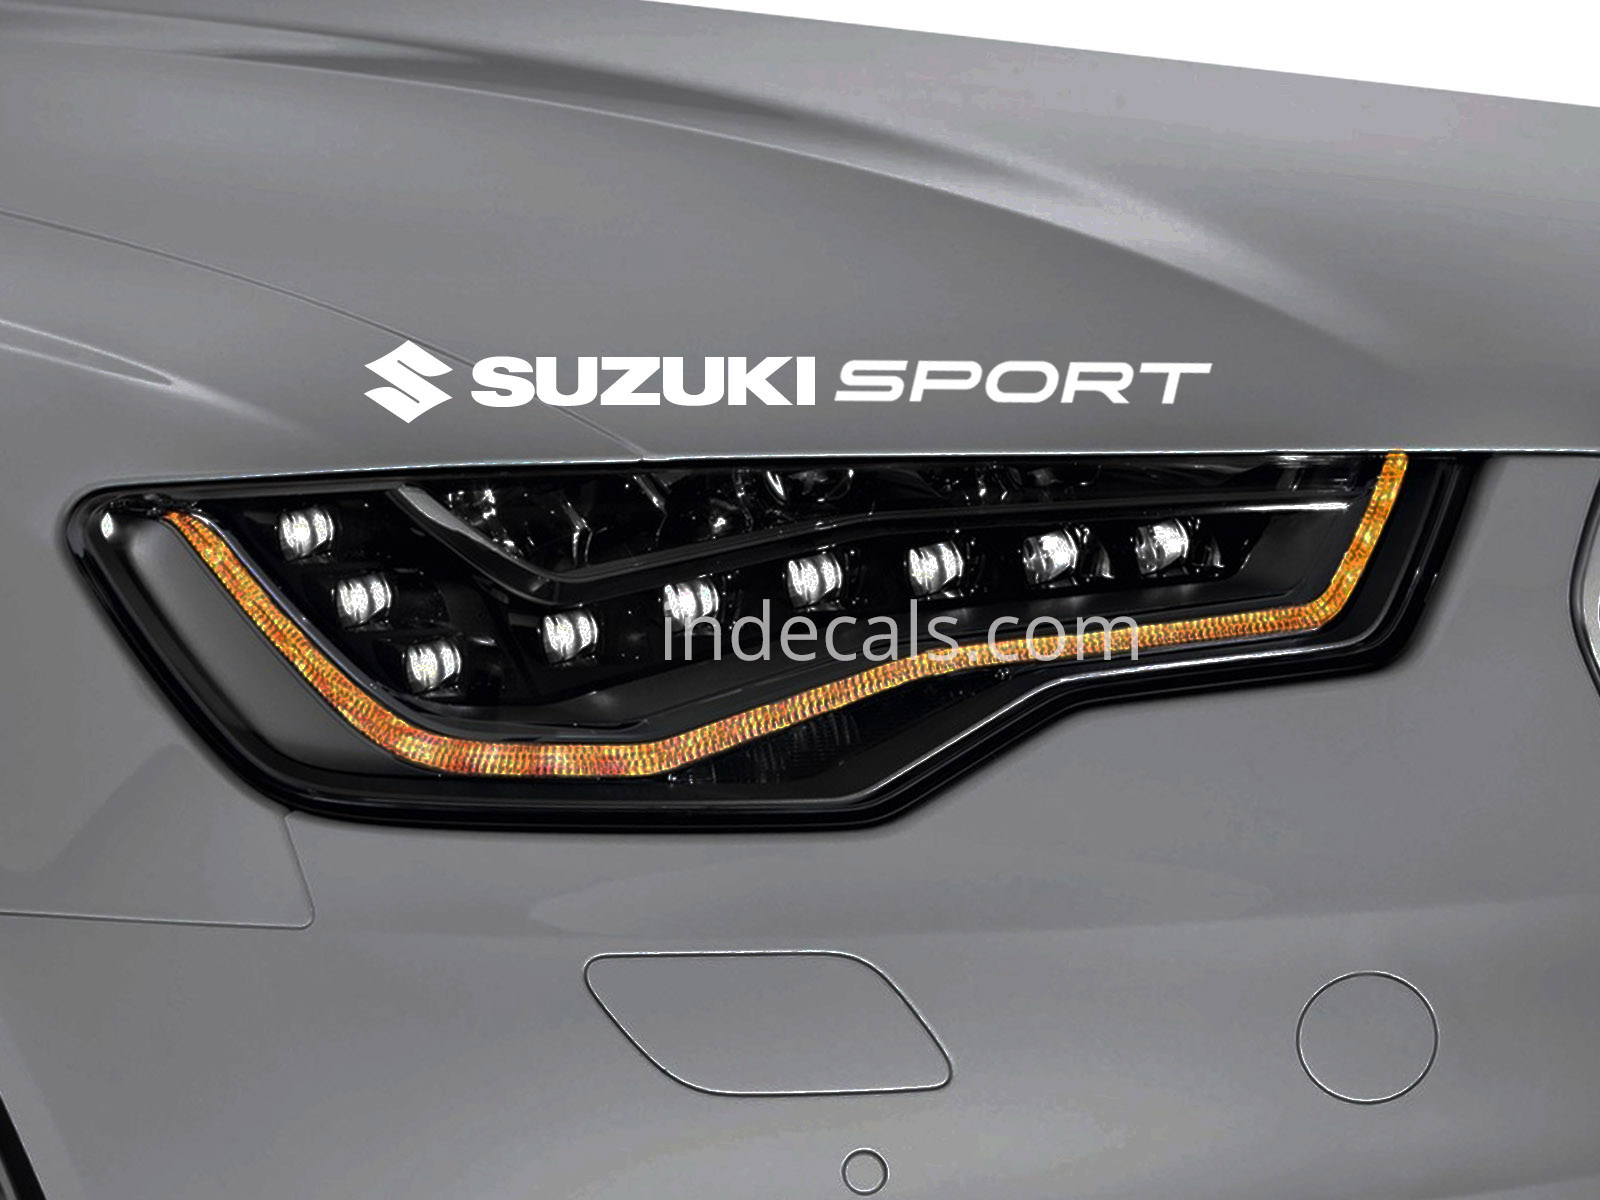 1 x Suzuki Sport Sticker for Eyebrow - White